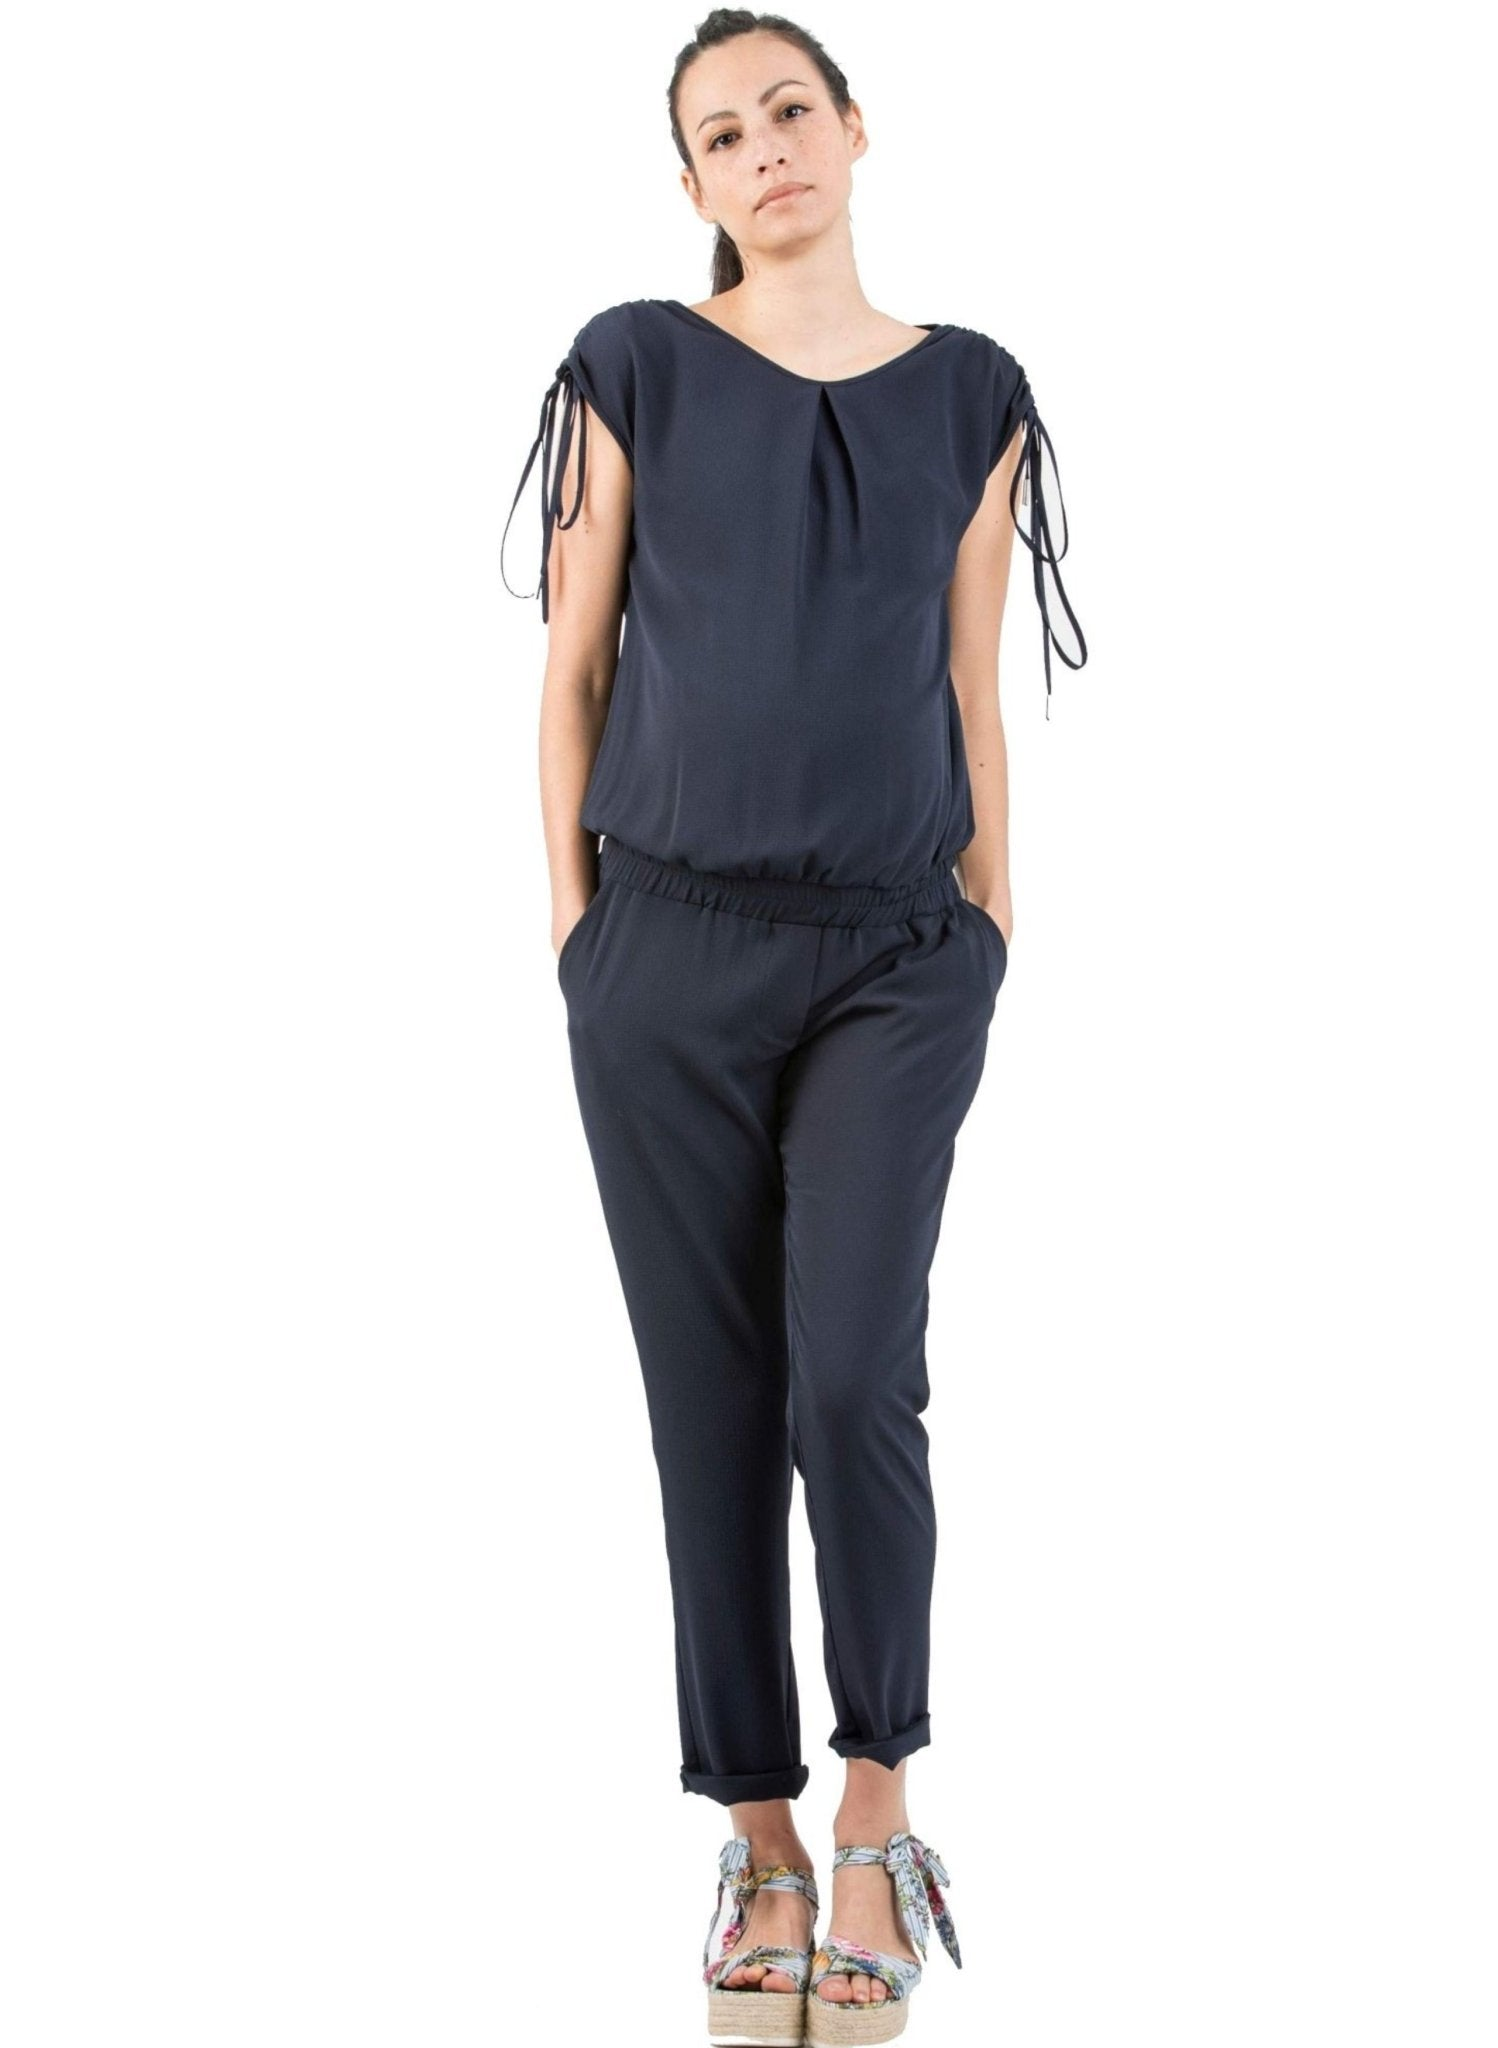 Maternity Jumpsuit with Shoulder Detail - Mums and Bumps